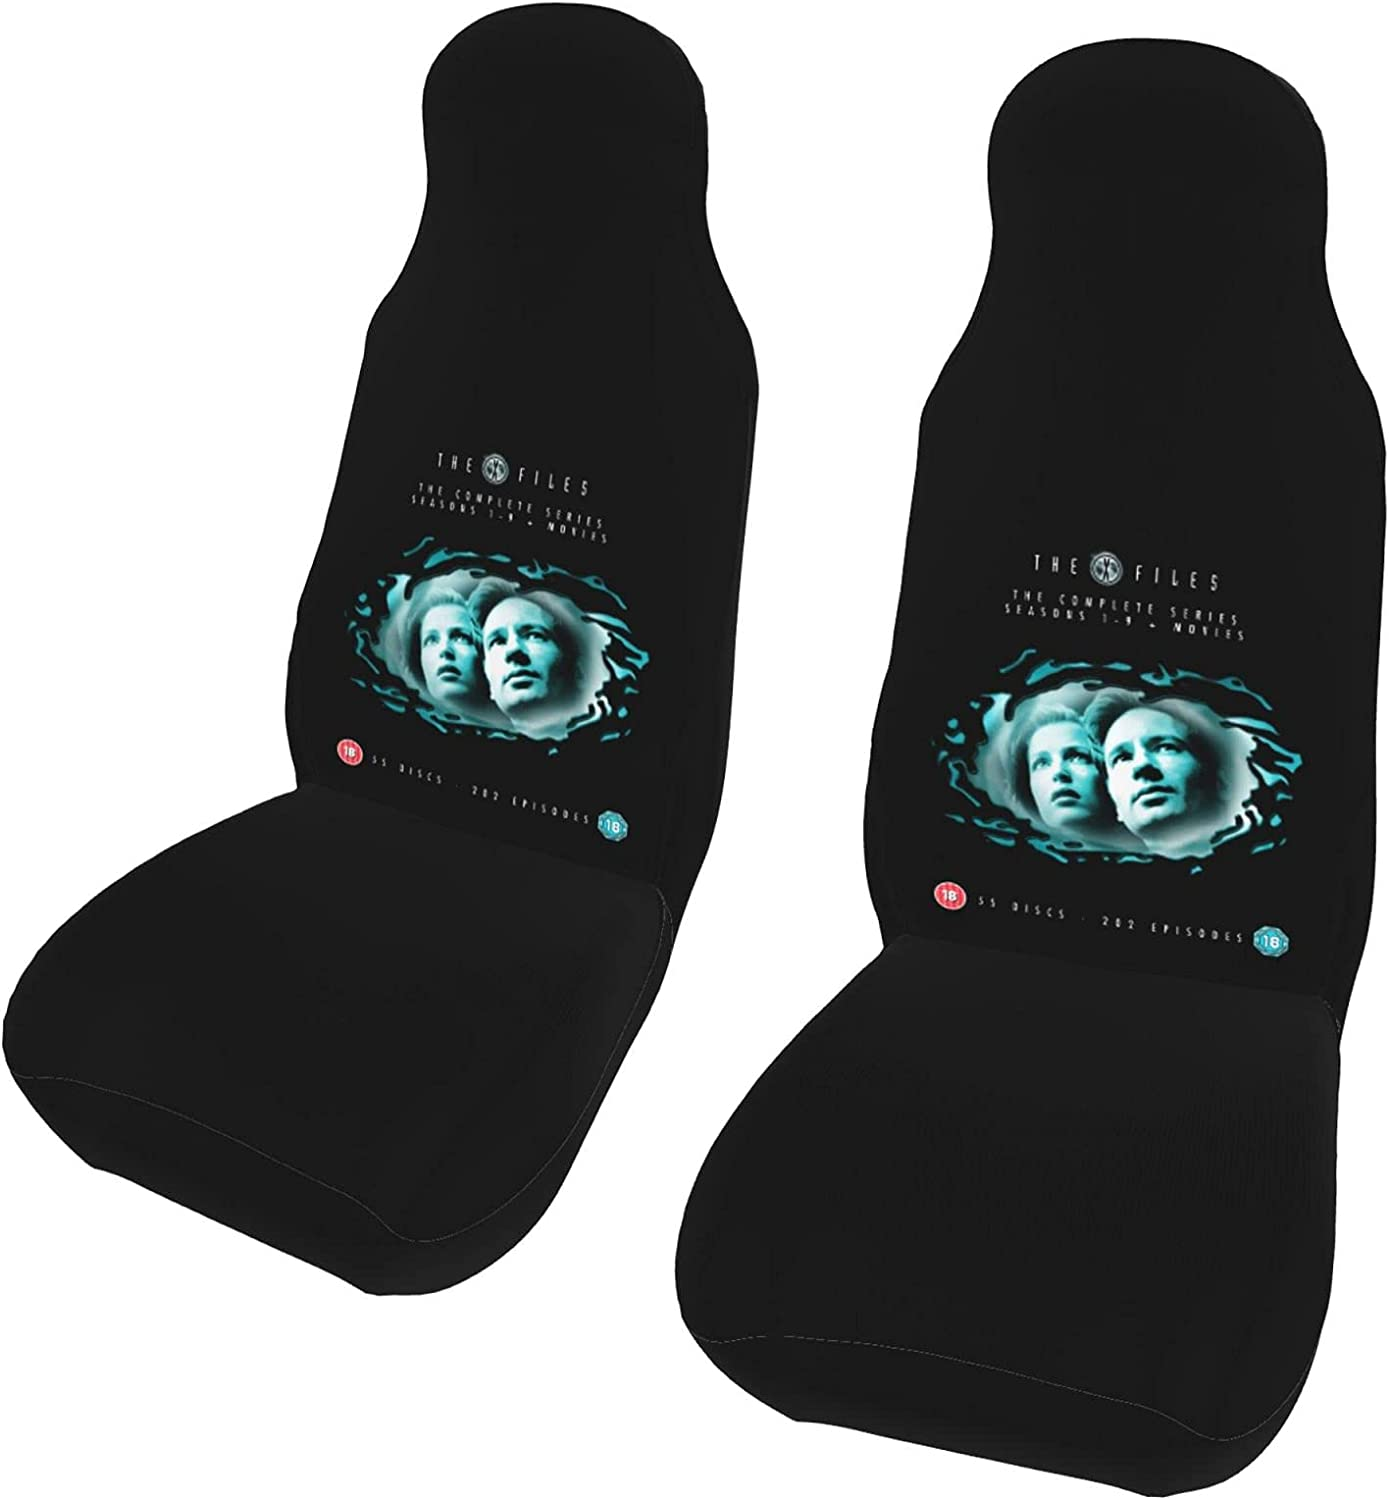 Eliphs X-Files Car Cushio Colorado Springs Mall Seat Covers discount